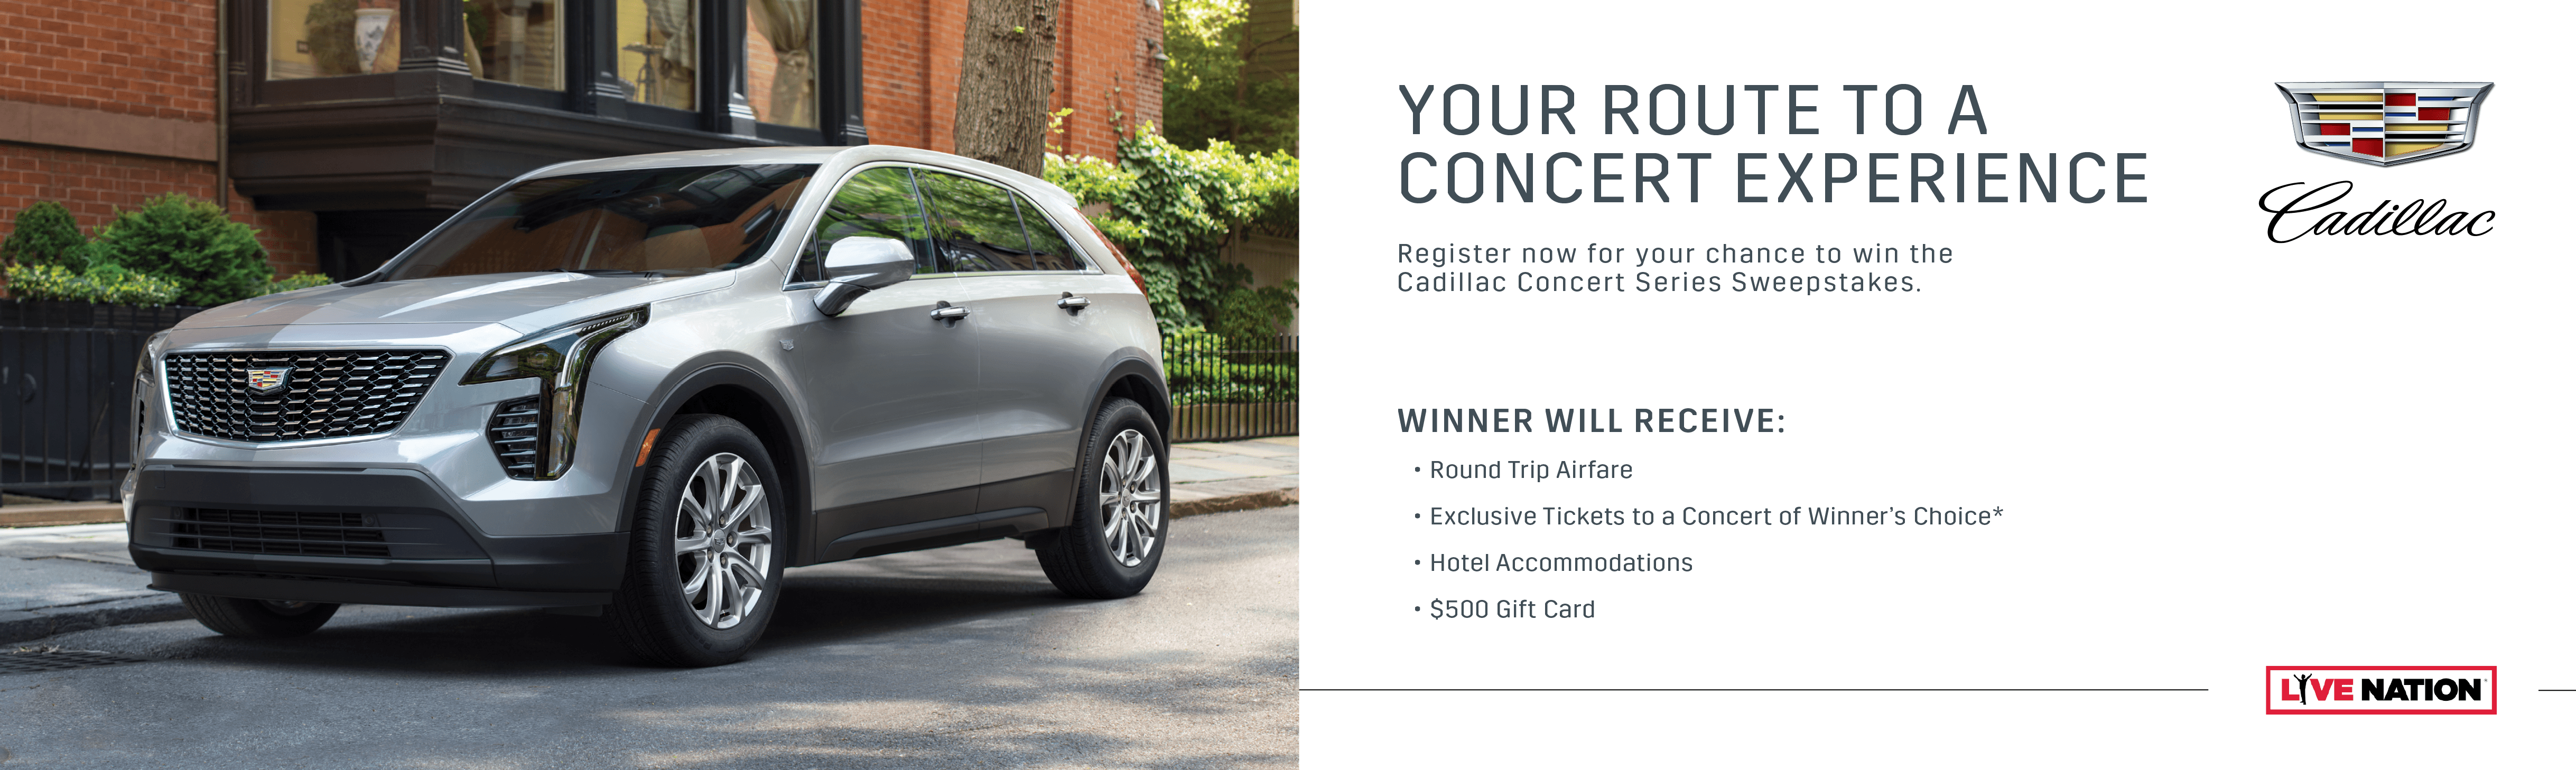 Complete The Required Fields Below To Register For 2019 Cadillac Concert Series Sweepstakes